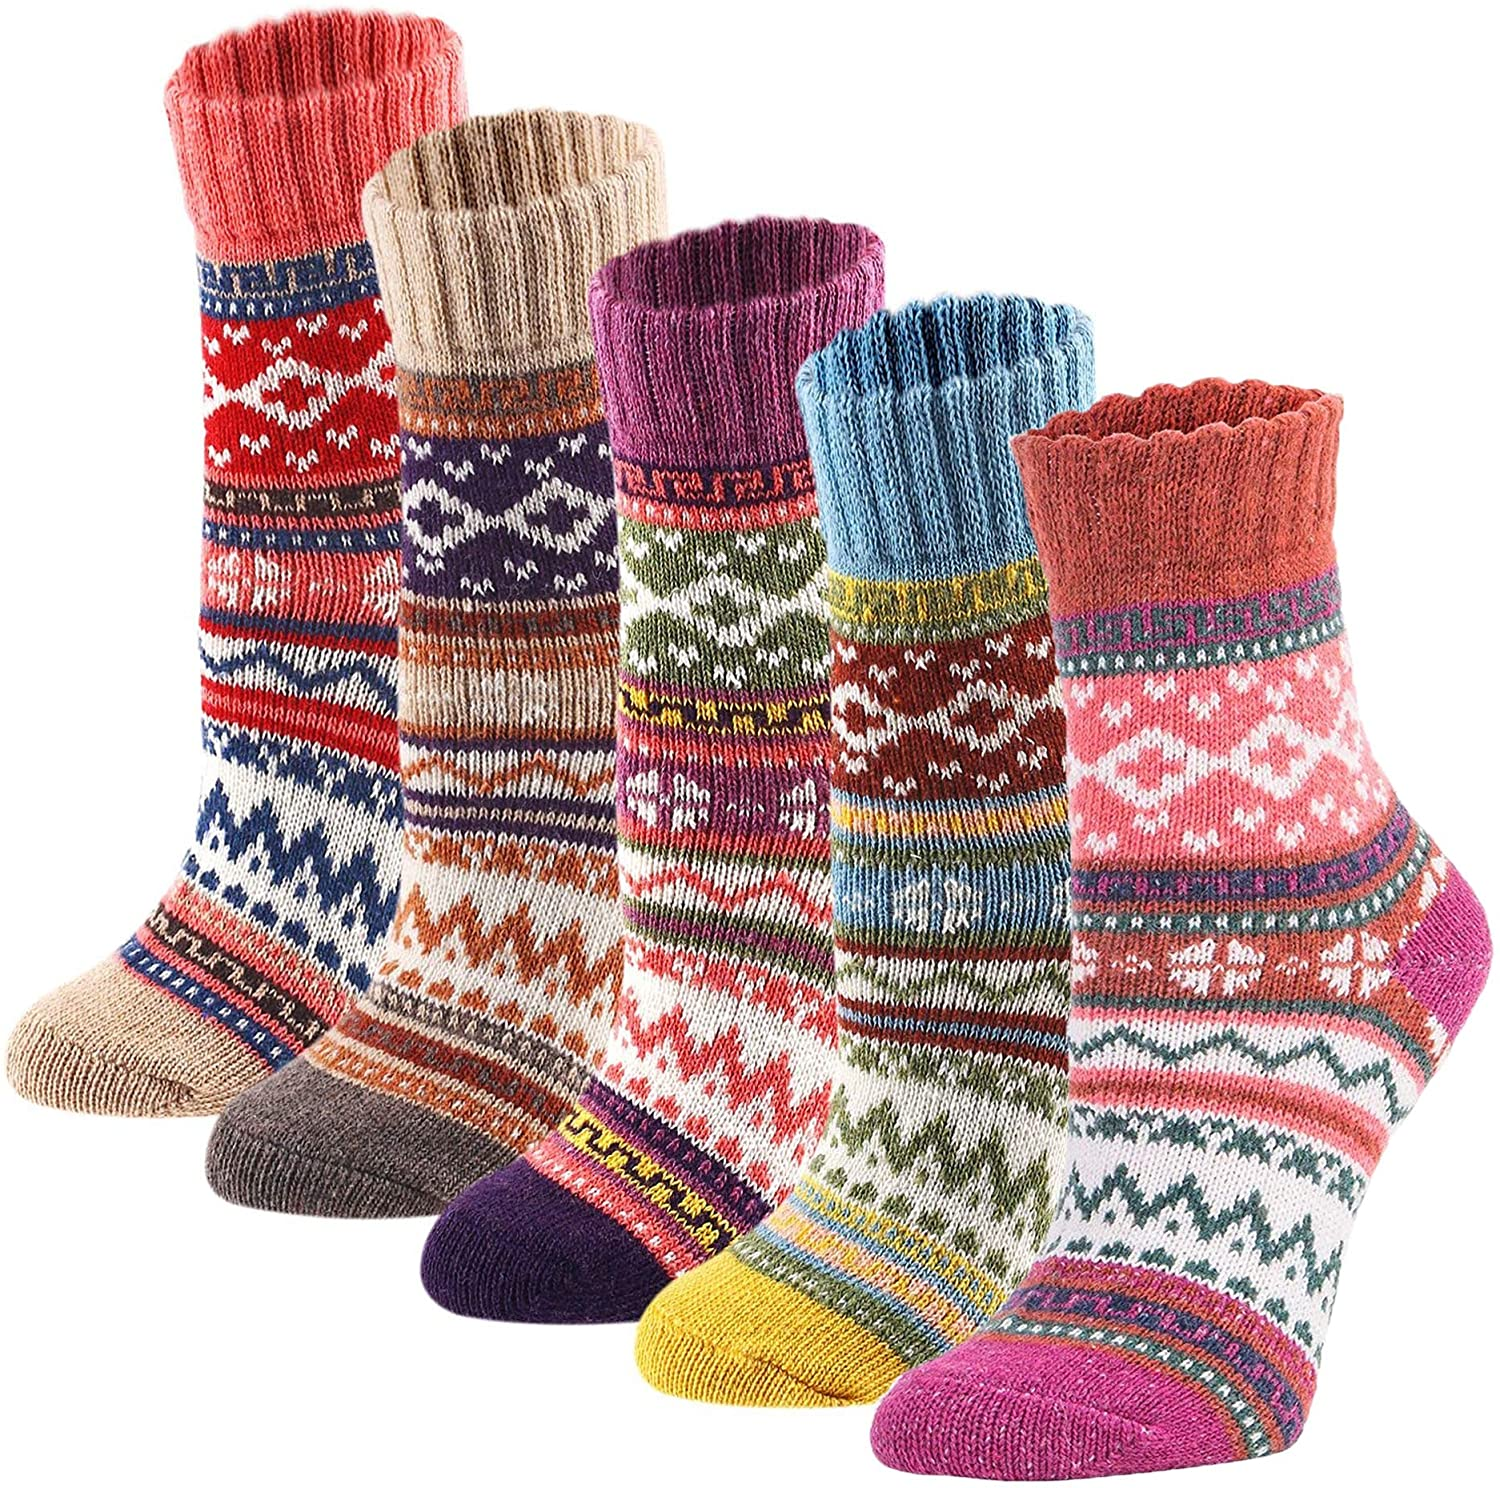 5 Pack Womens Socks Vintage Winter Soft Warm Cold Knit Wool Crew Socks with Gift Box